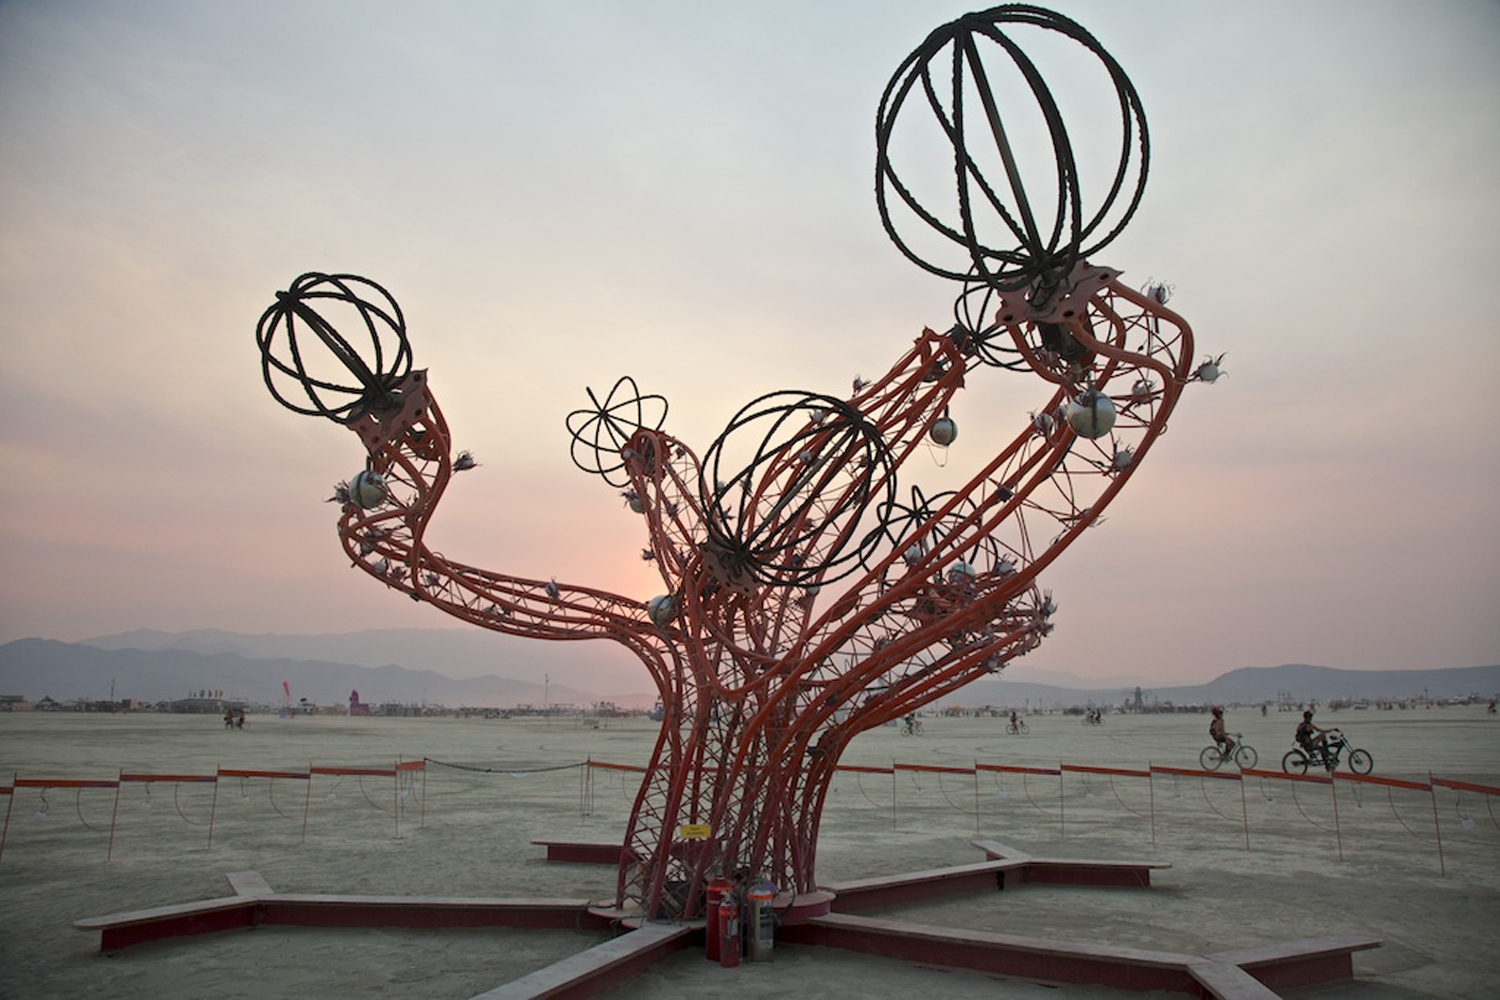 Helix day at Burning Man 2013. Photo by Alan Grinberg